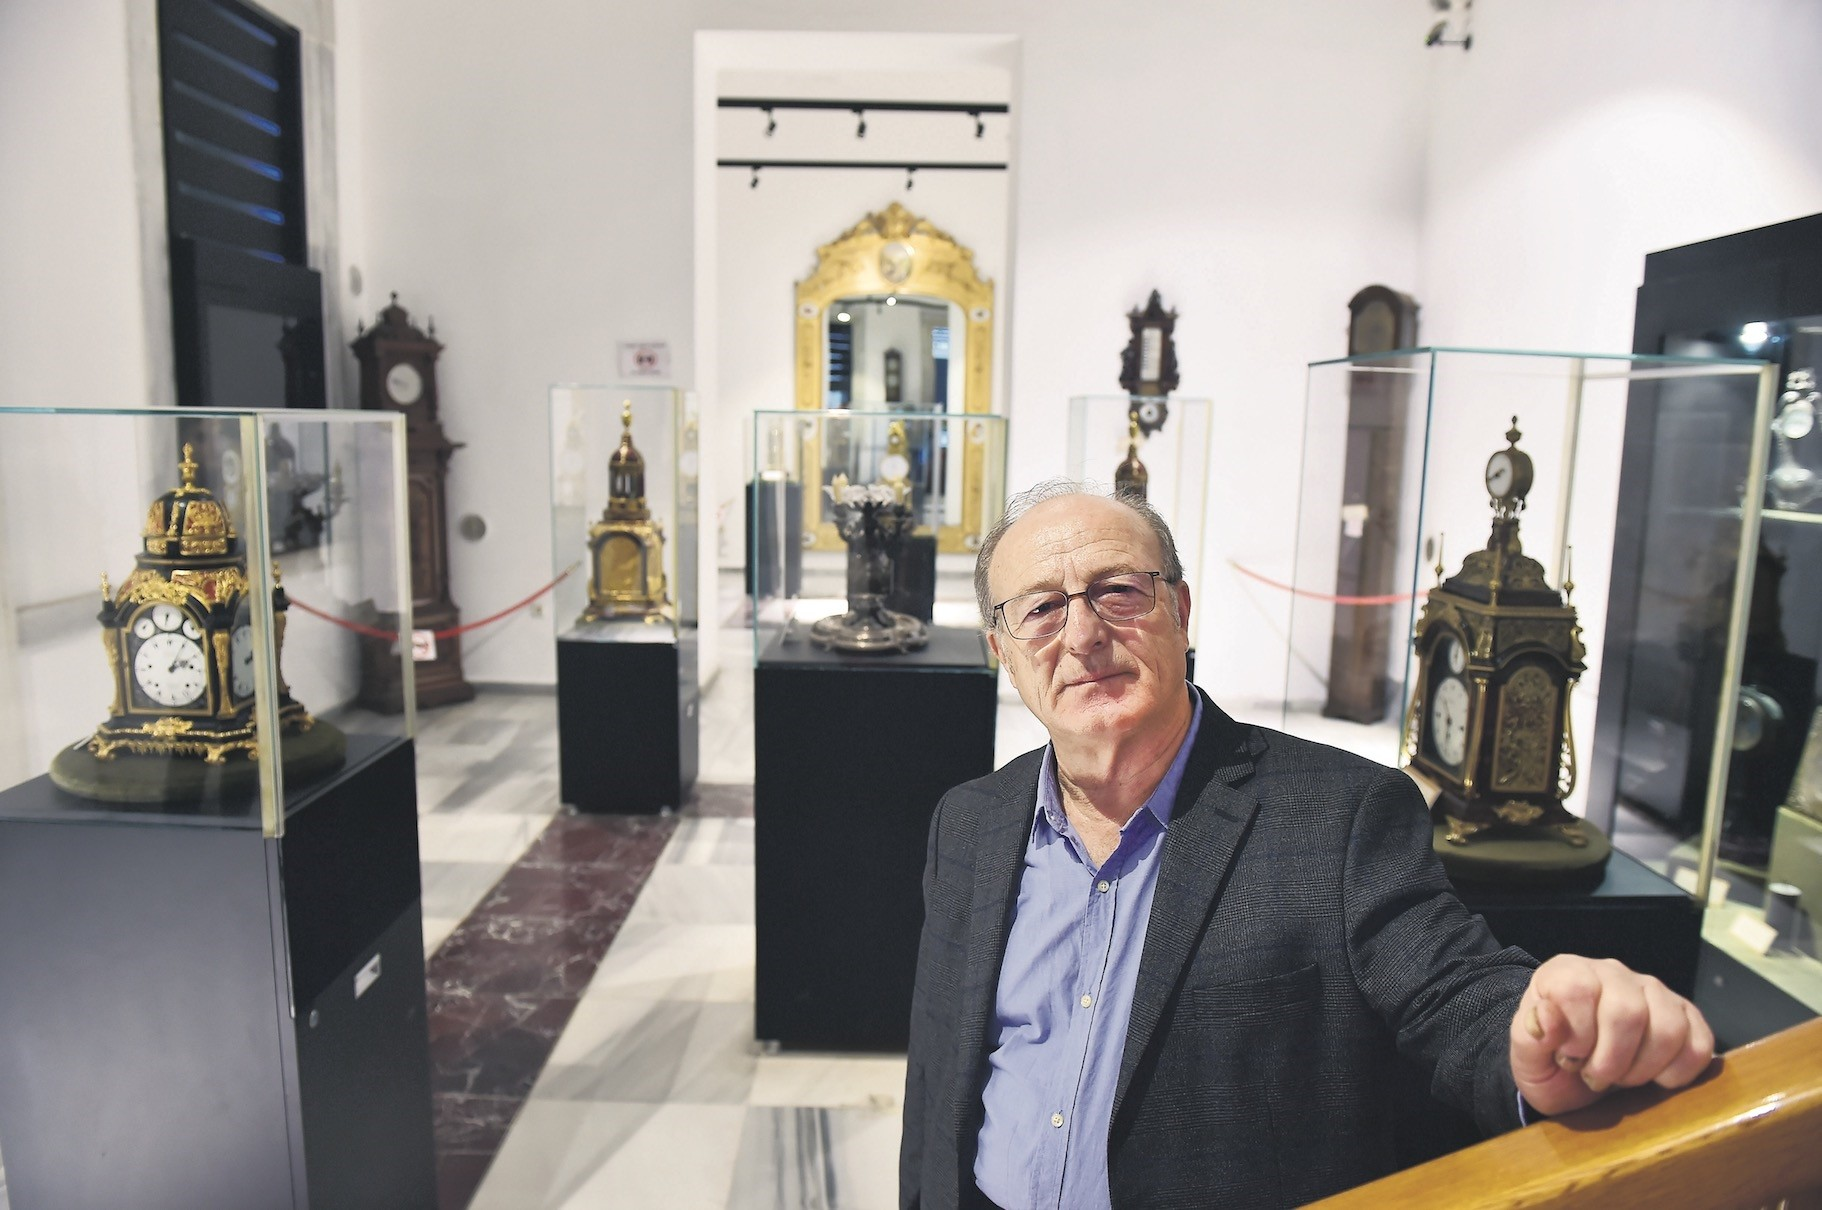 Recep Gu00fcrgen, who was trained by the clock master of Ottoman Sultan Abdu00fclhamidu2019s court, poses in the gallery where he displays antique clocks.